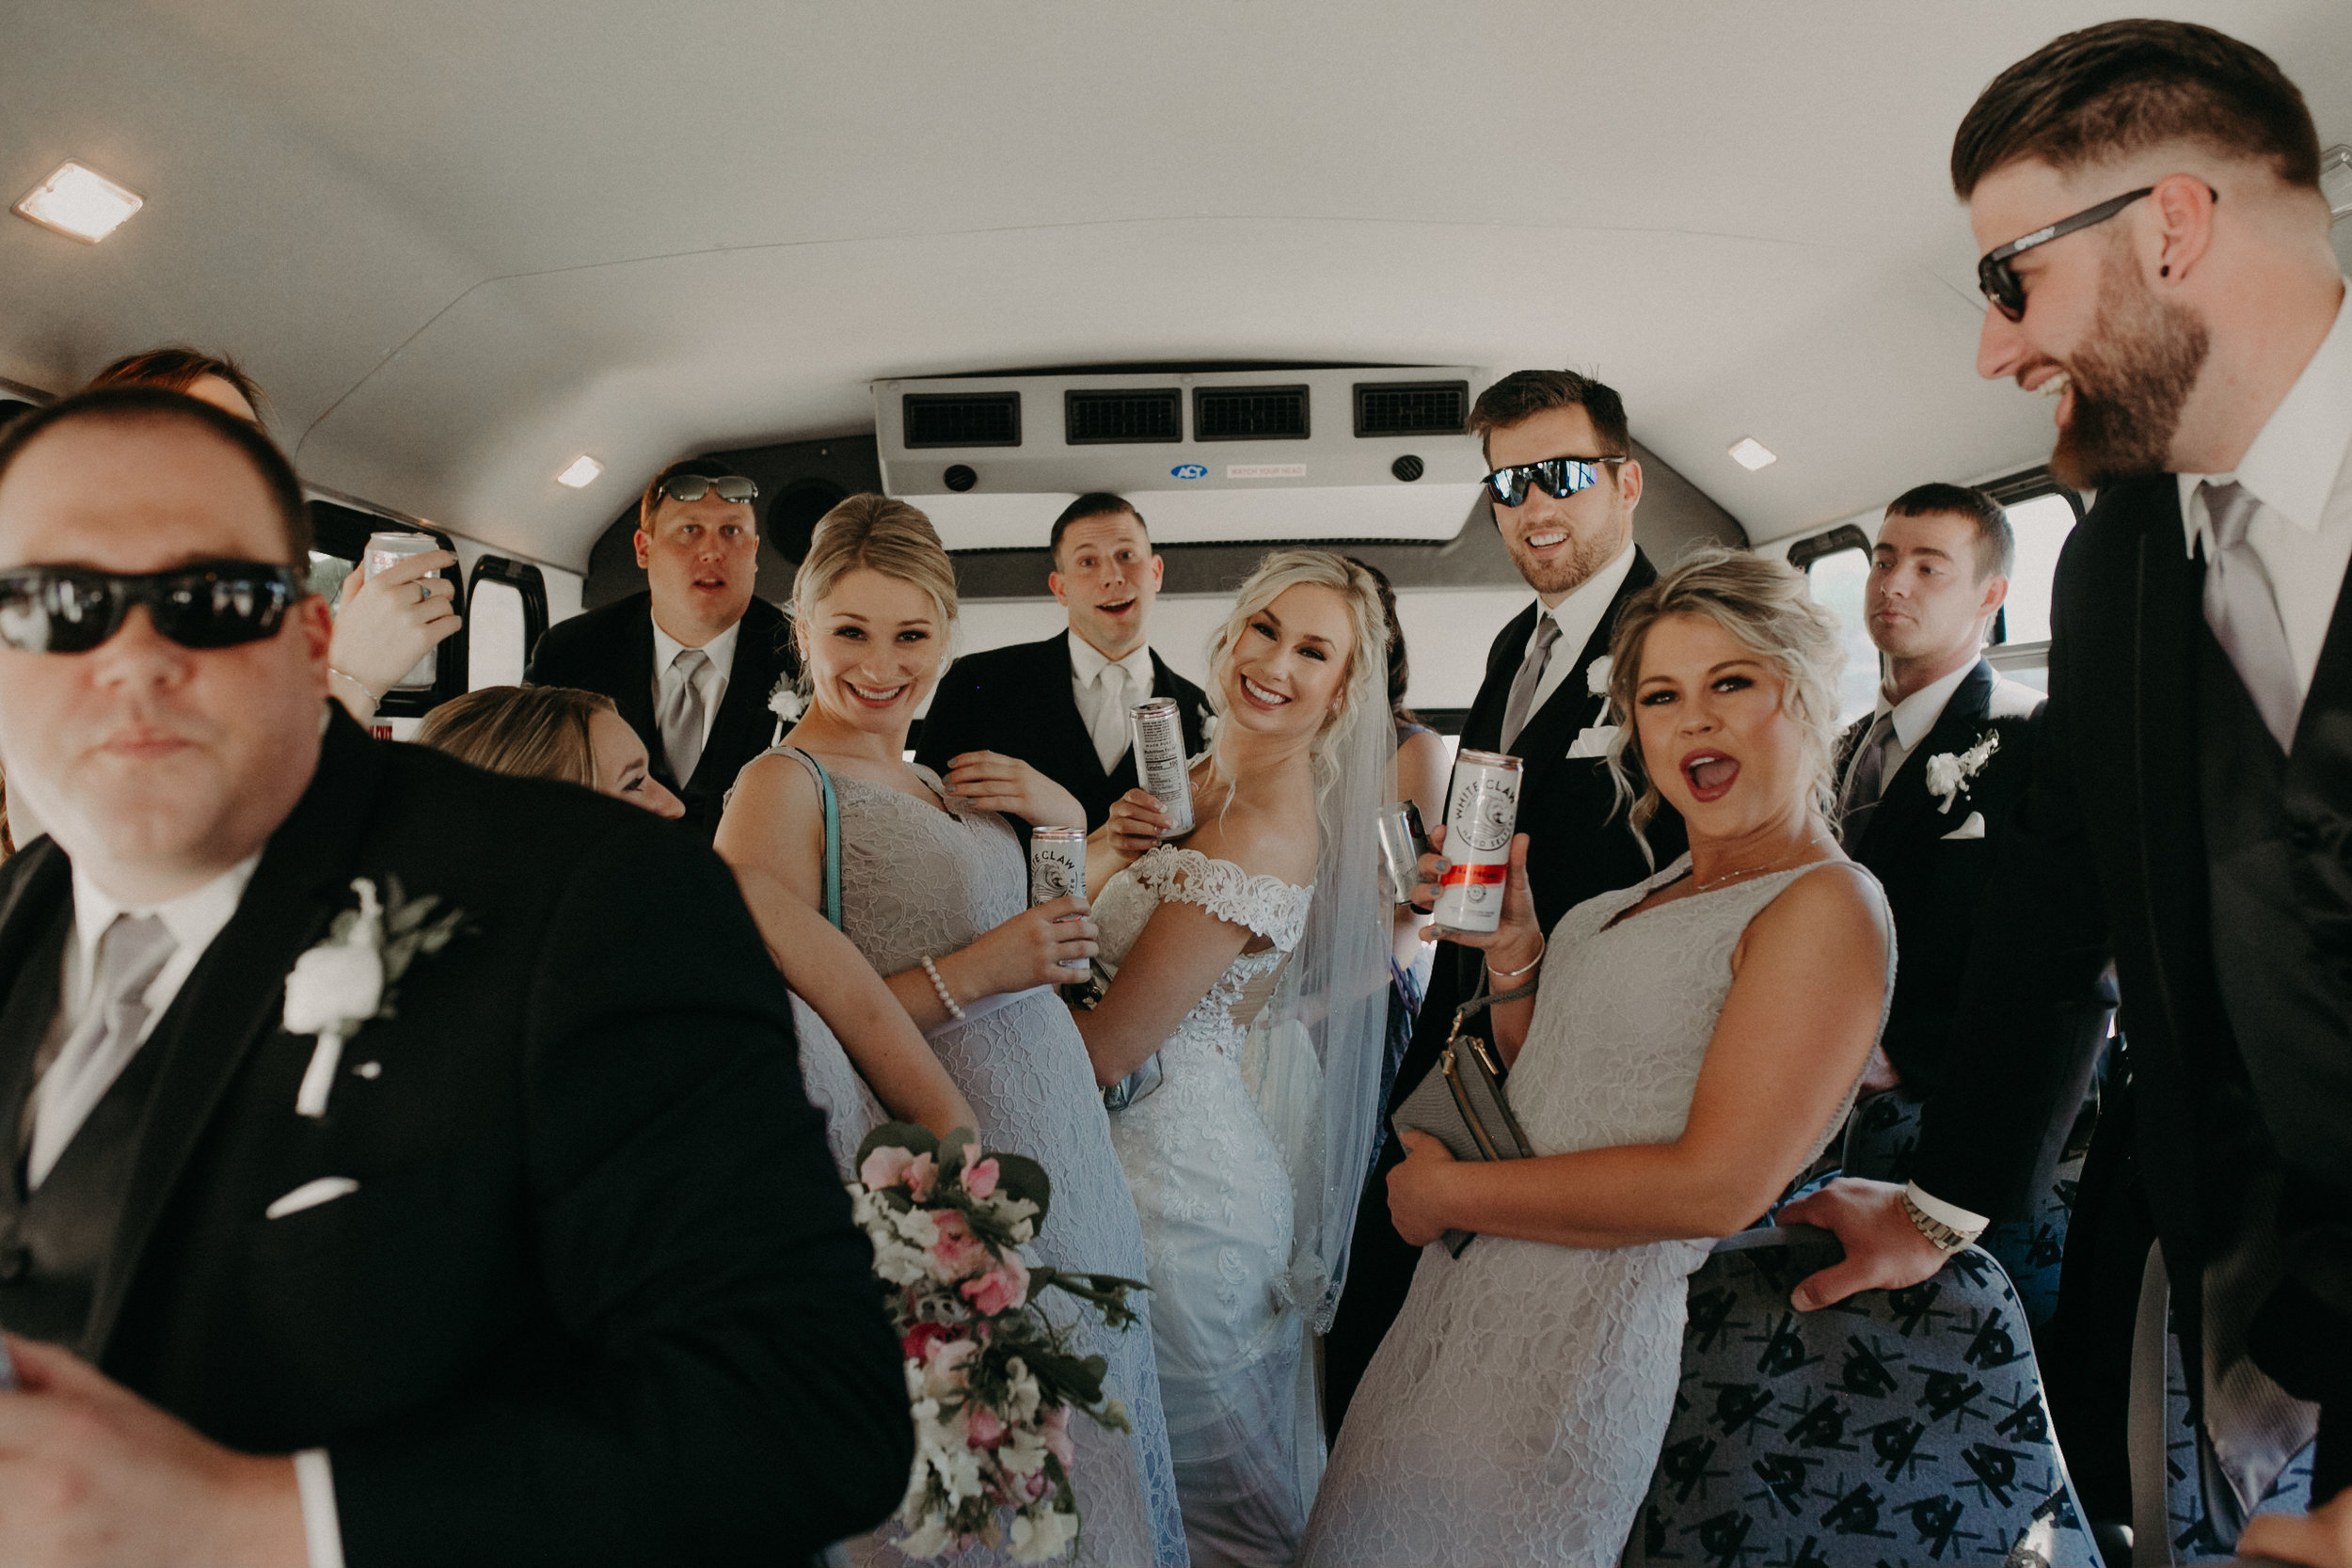 Marshfield Bus Service during a wedding to bars photographed by Andrea Wagner